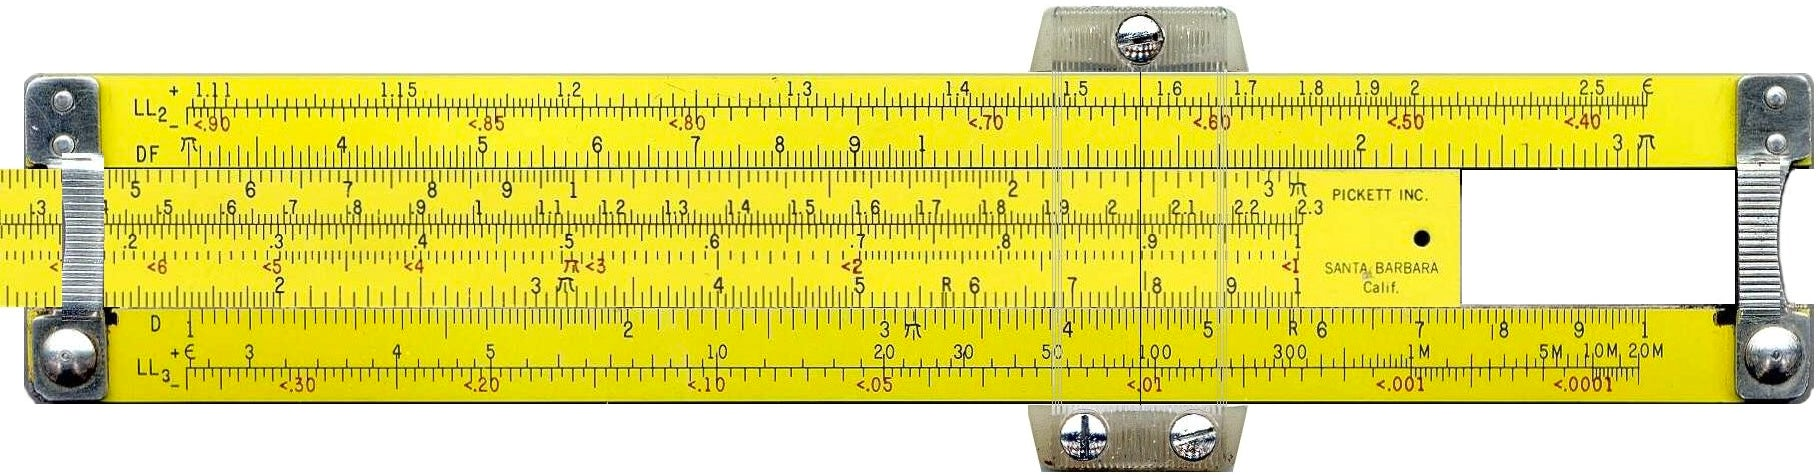 It's Easier To Tell Time Than do Maths on This Slide Rule Watch